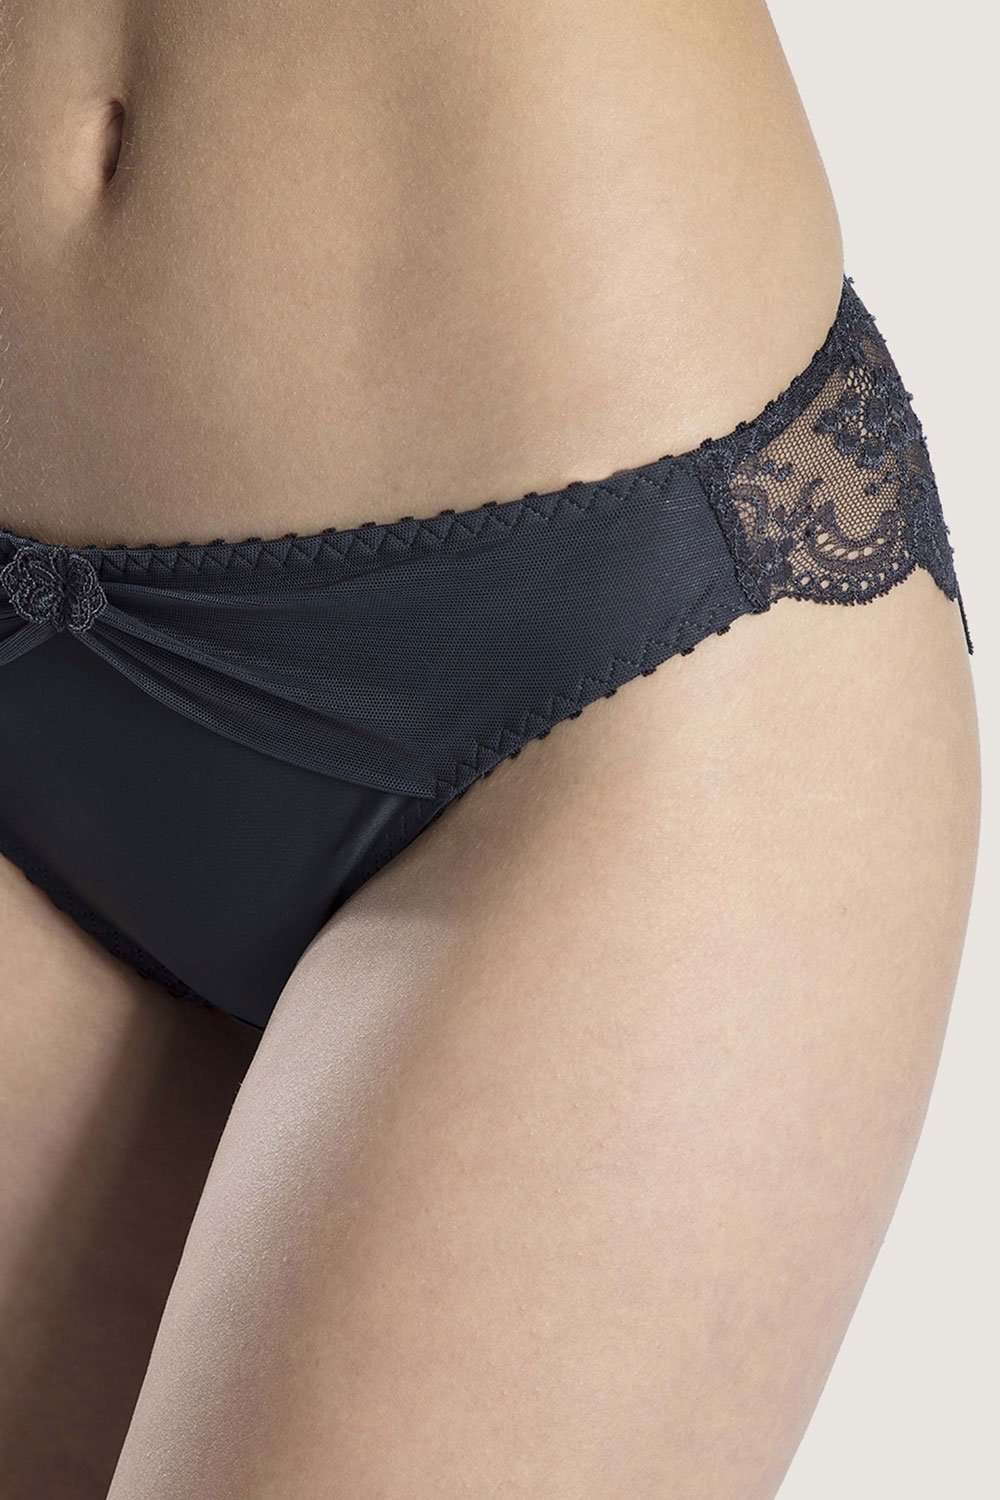 Aubade à l'Amour Italian Brief